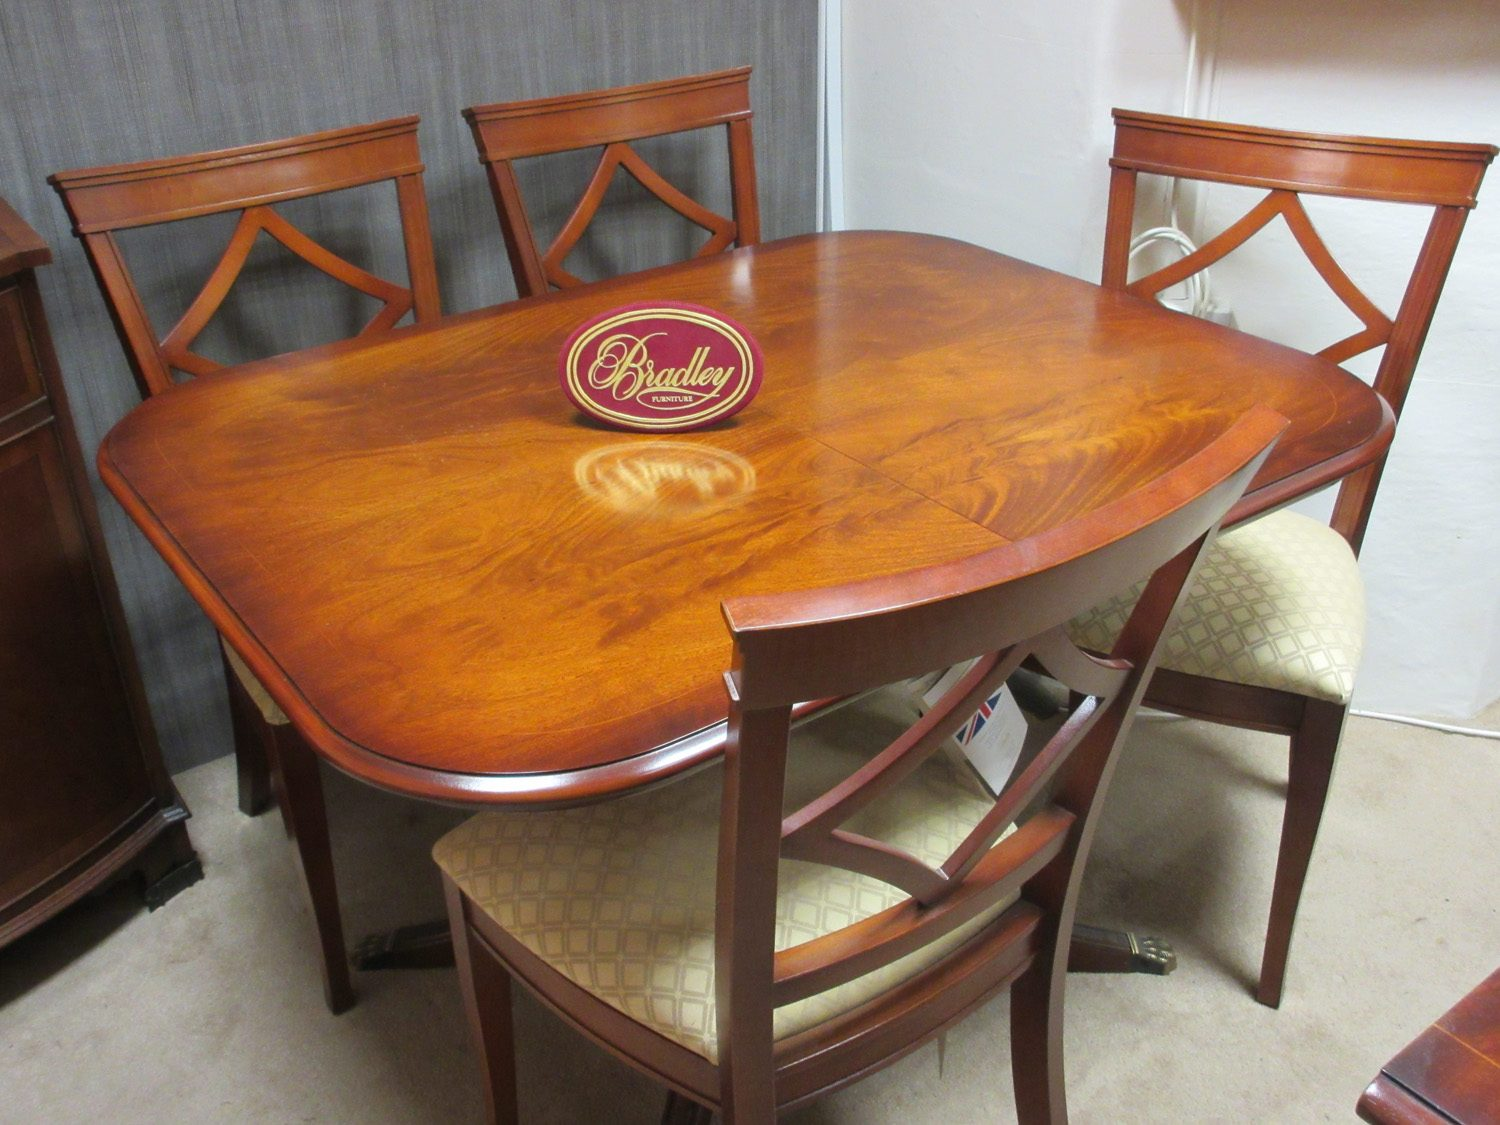 Bradley Furniture Mahogany Dining Table 4 Chairs Clearance Brentham Furniture